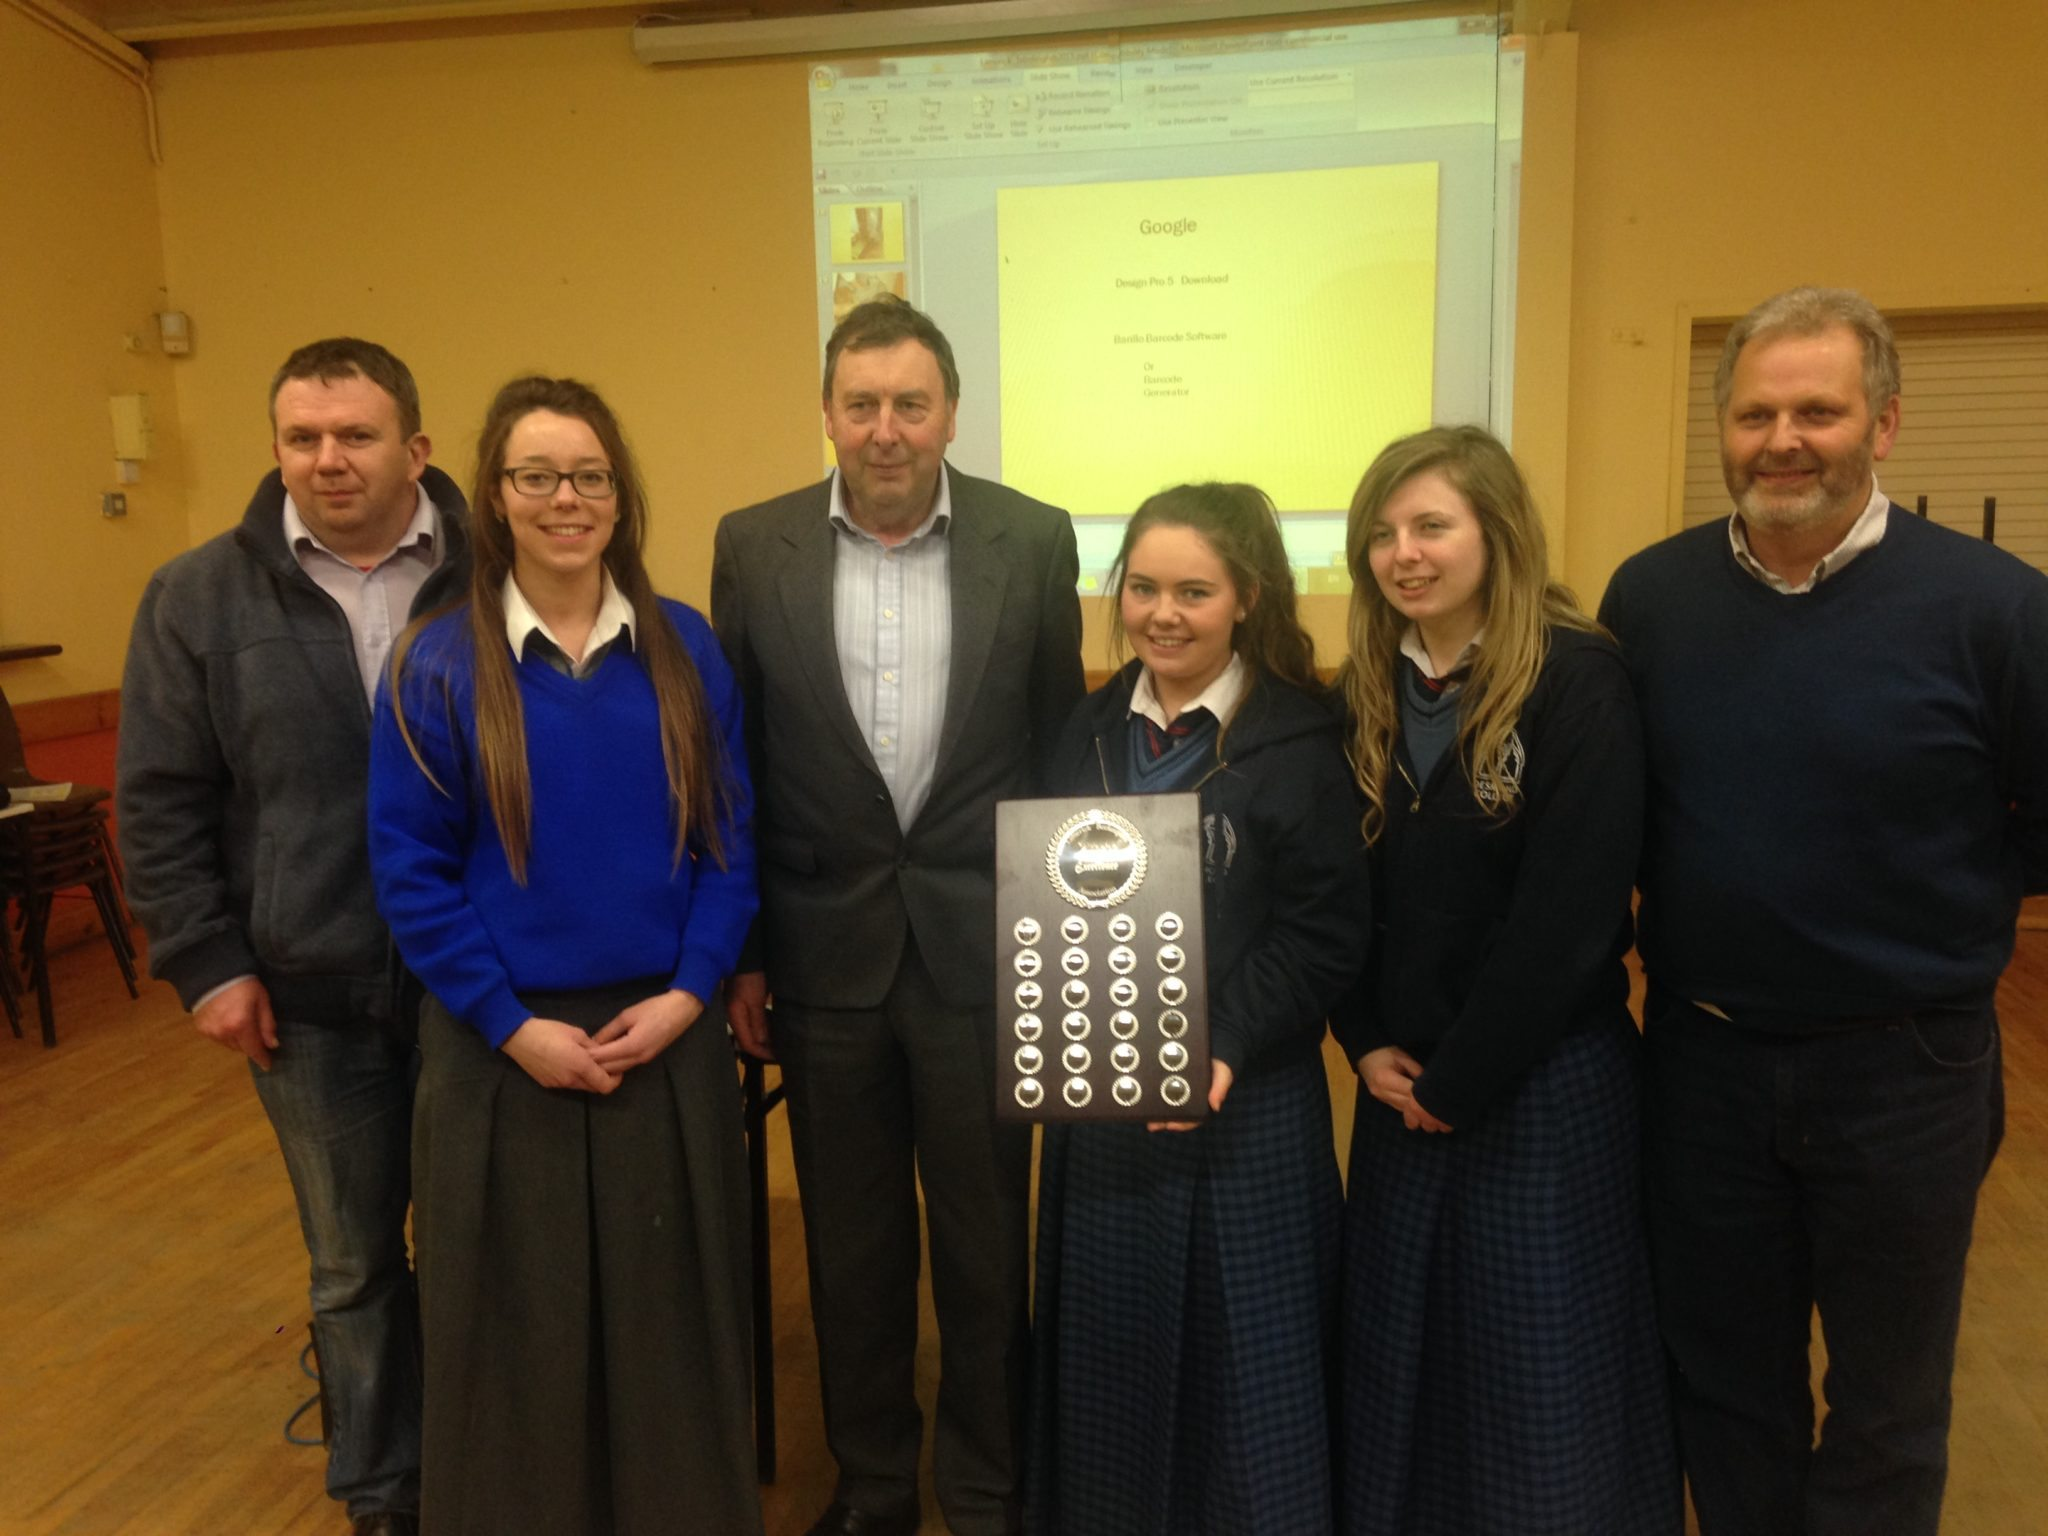 Kiara Carroll, Julie Cantillon and Terri Keane are Presented with a Perpetual Beekeepers of Excellence award for 2015 from the Irish Beekeepers Association for participating in the BT Young Scientist Competition